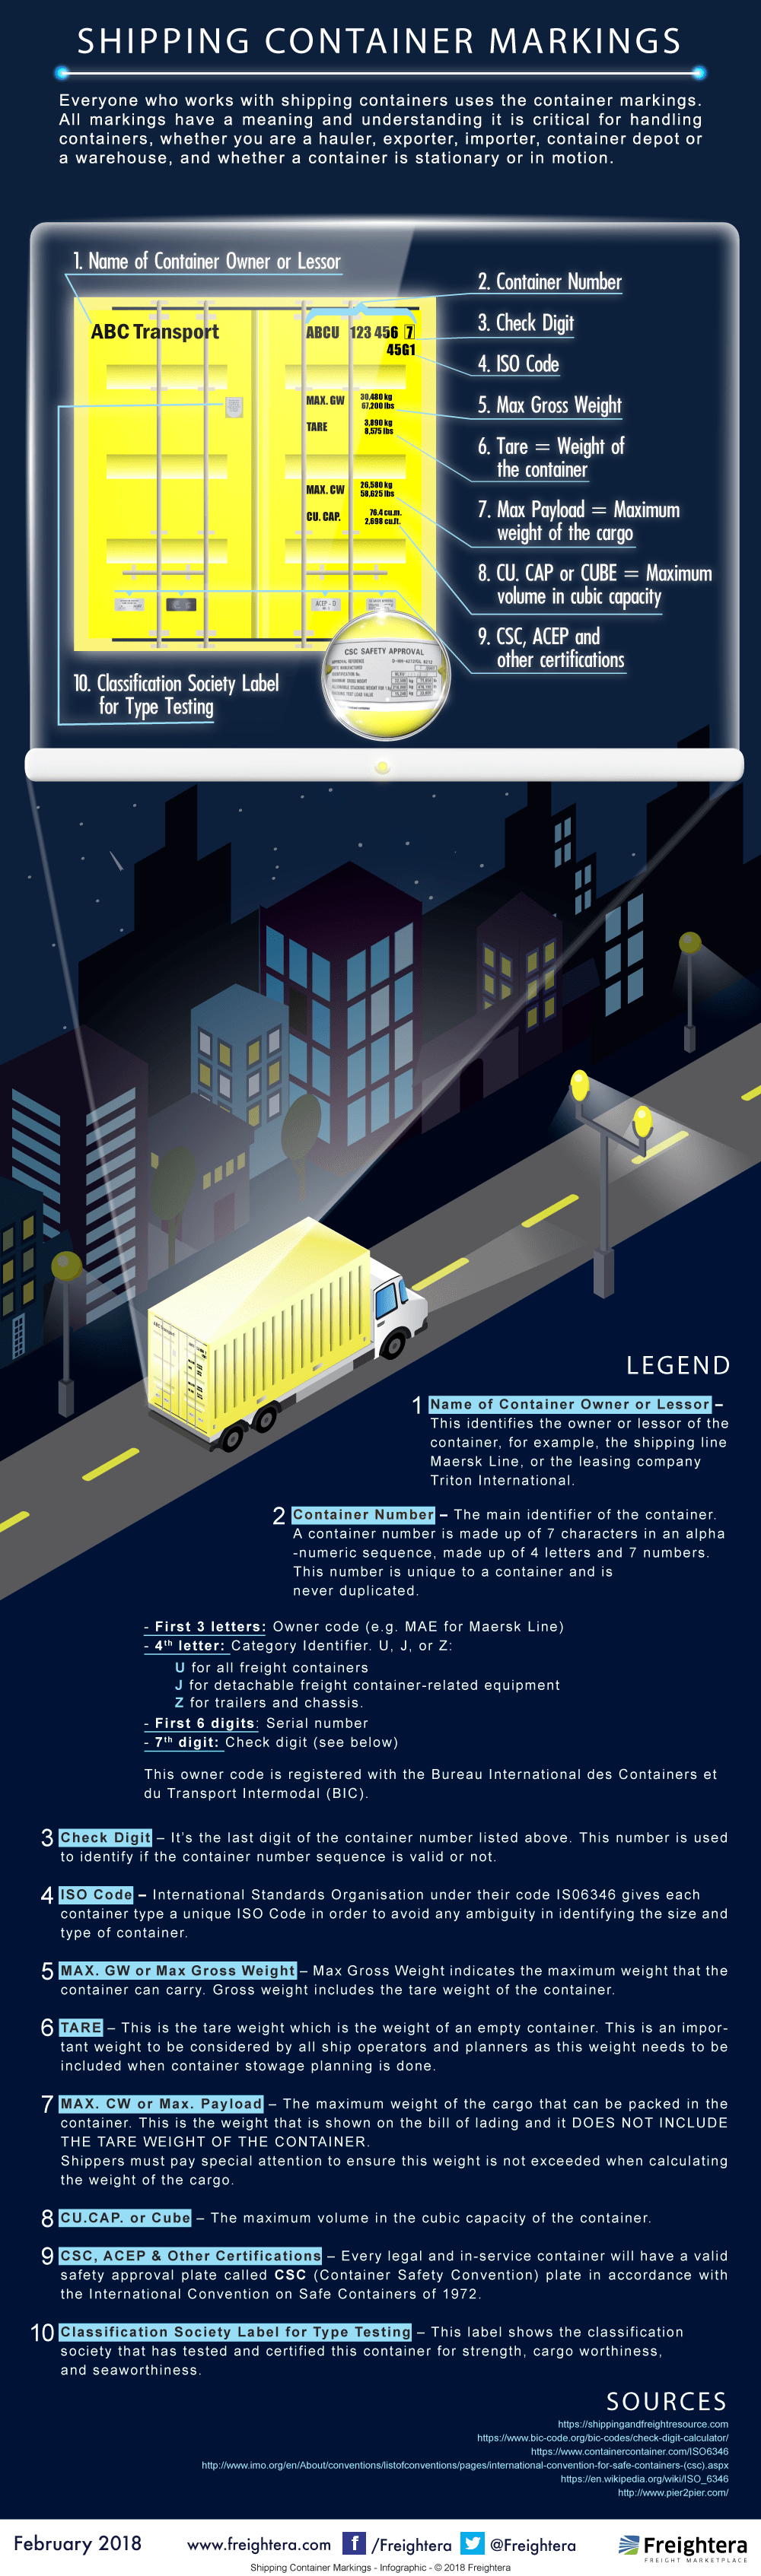 SHIPPING CONTAINER MARKINGS Freightera Infographic